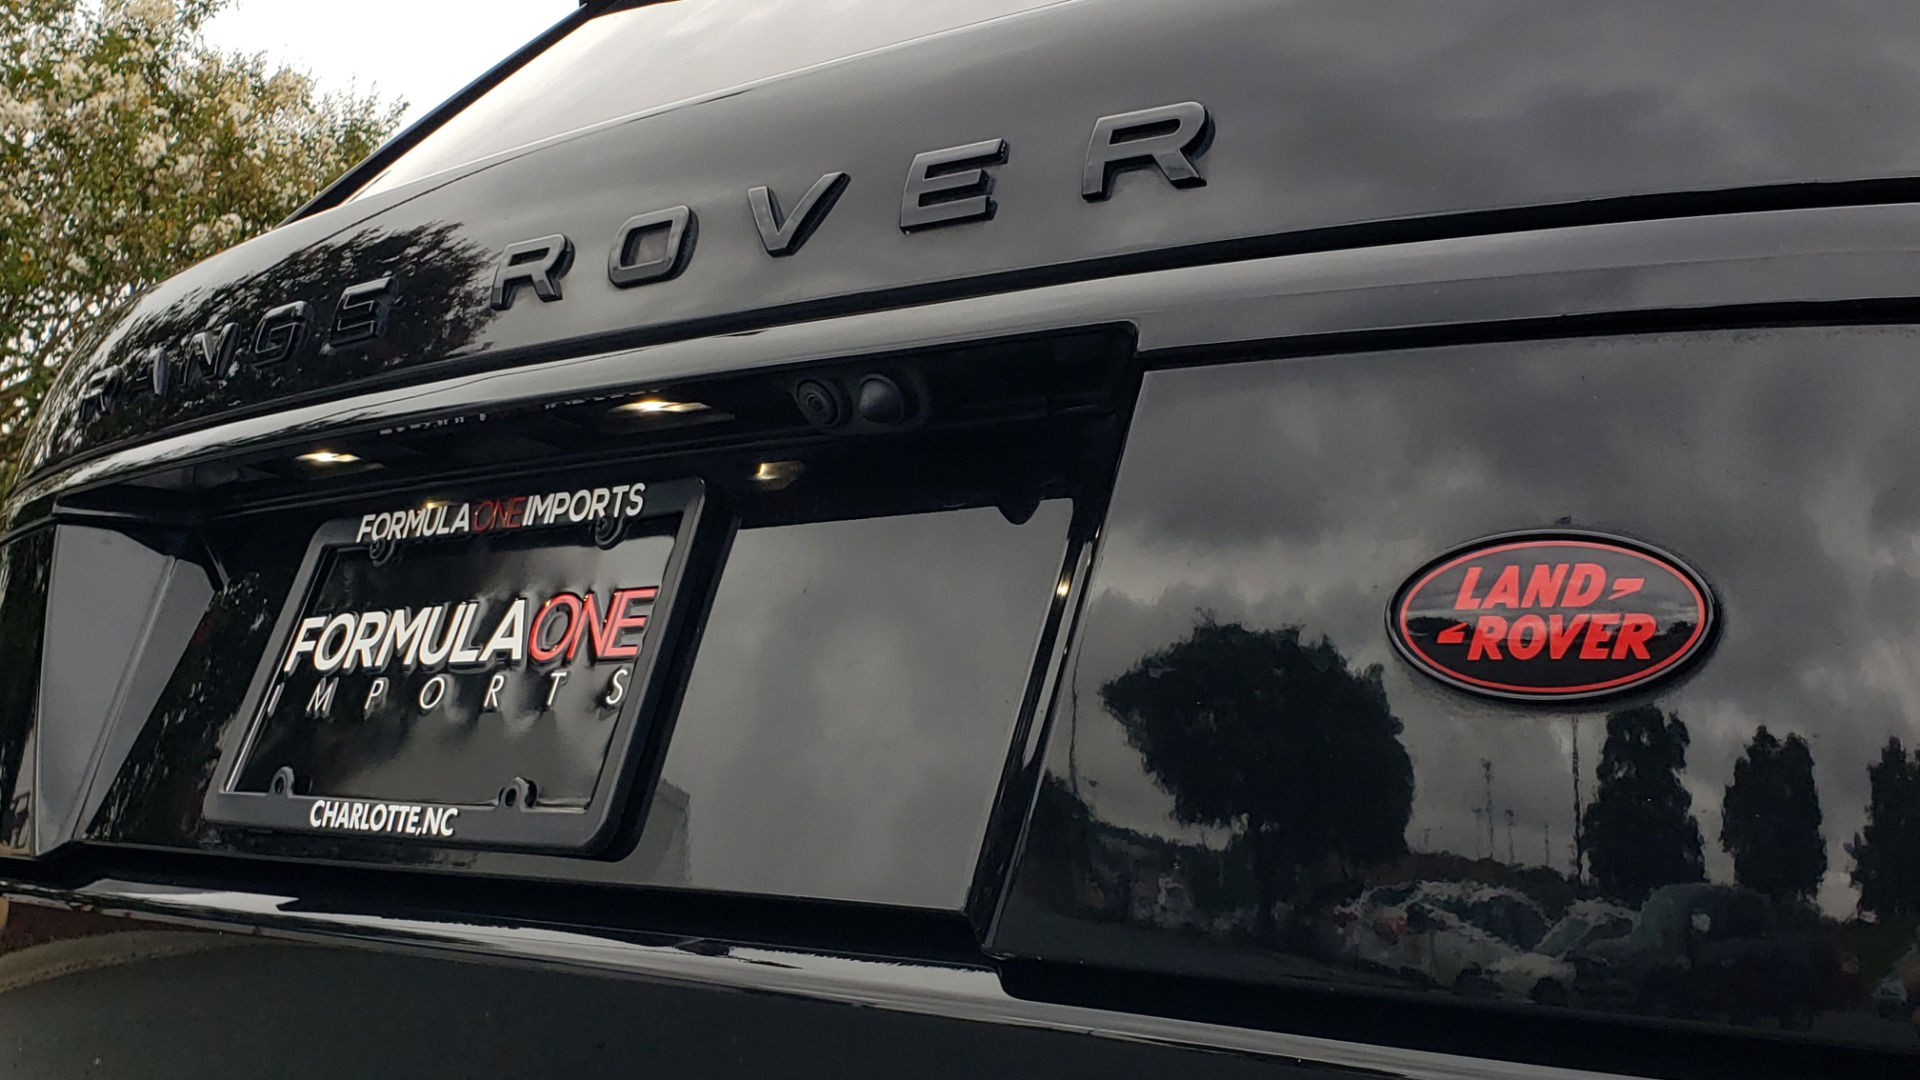 Used 2016 Land Rover RANGE ROVER AUTOBIOGRAPHY / SC-V8 / LWB / PANO-ROOF / NAV / MERIDIAN / ENT / REARVIEW for sale $71,495 at Formula Imports in Charlotte NC 28227 38